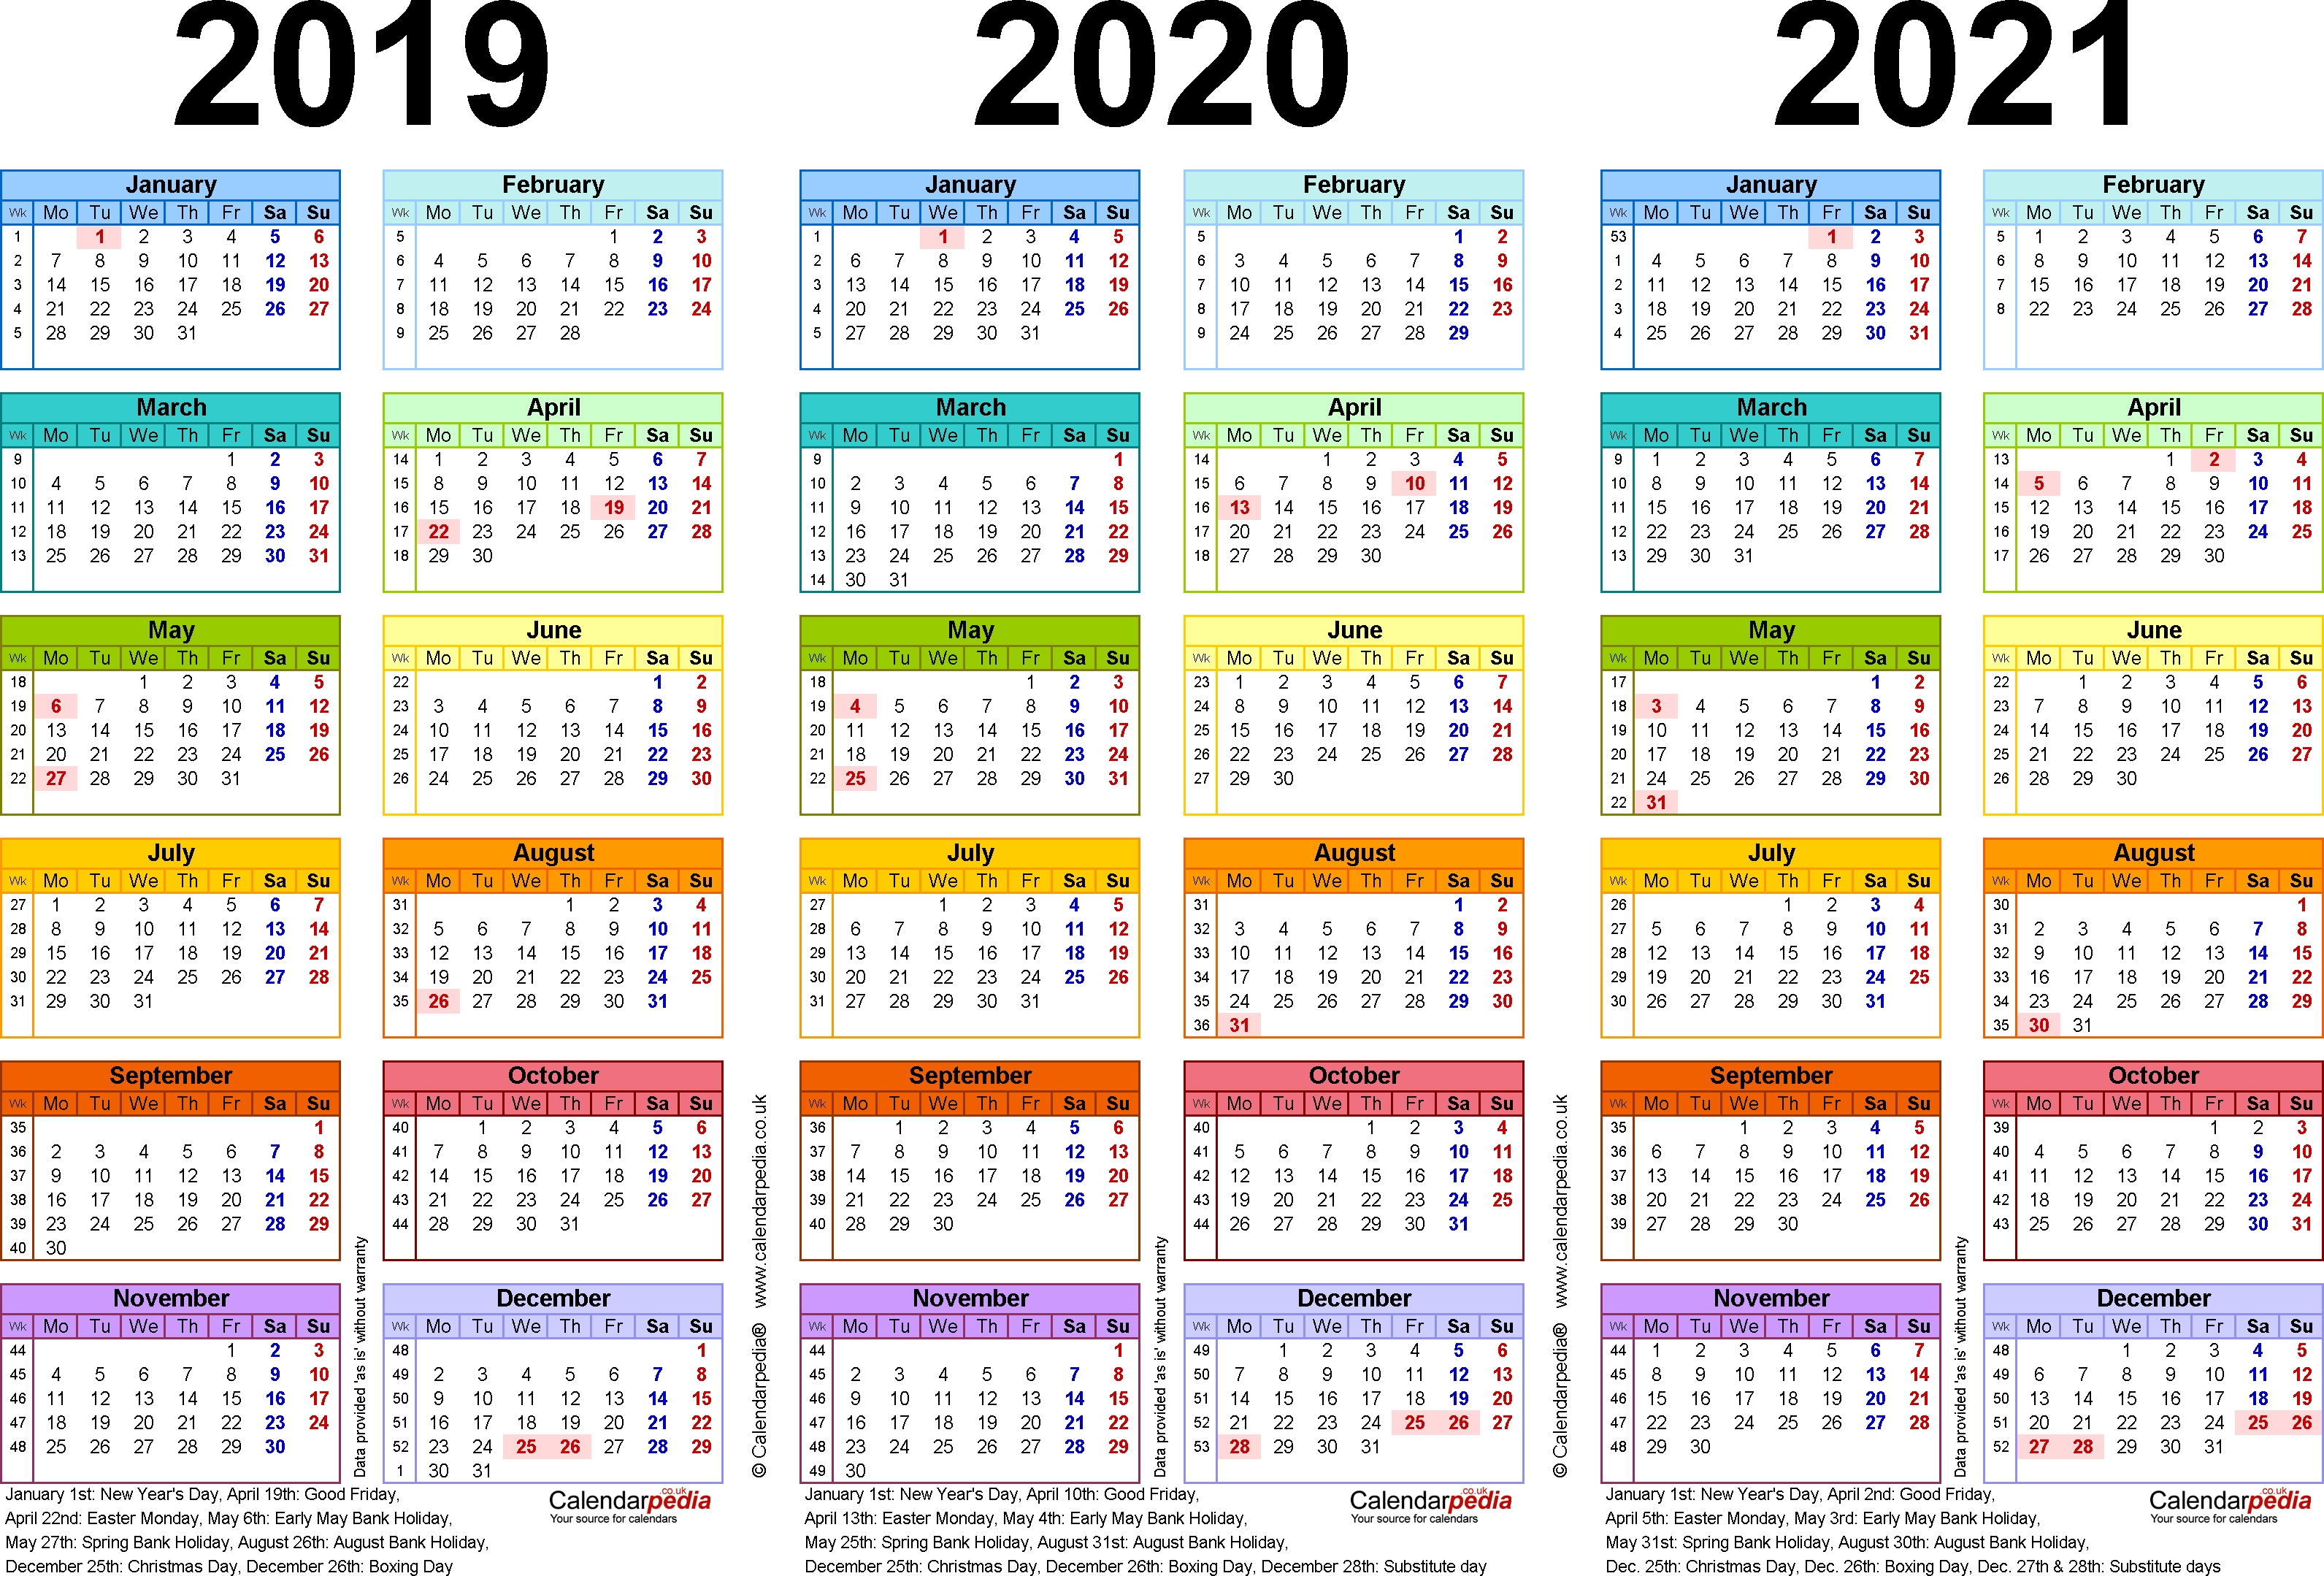 Three Year Calendars For 2019, 2020 & 2021 (Uk) For Pdf 3 Year Calendar 2019